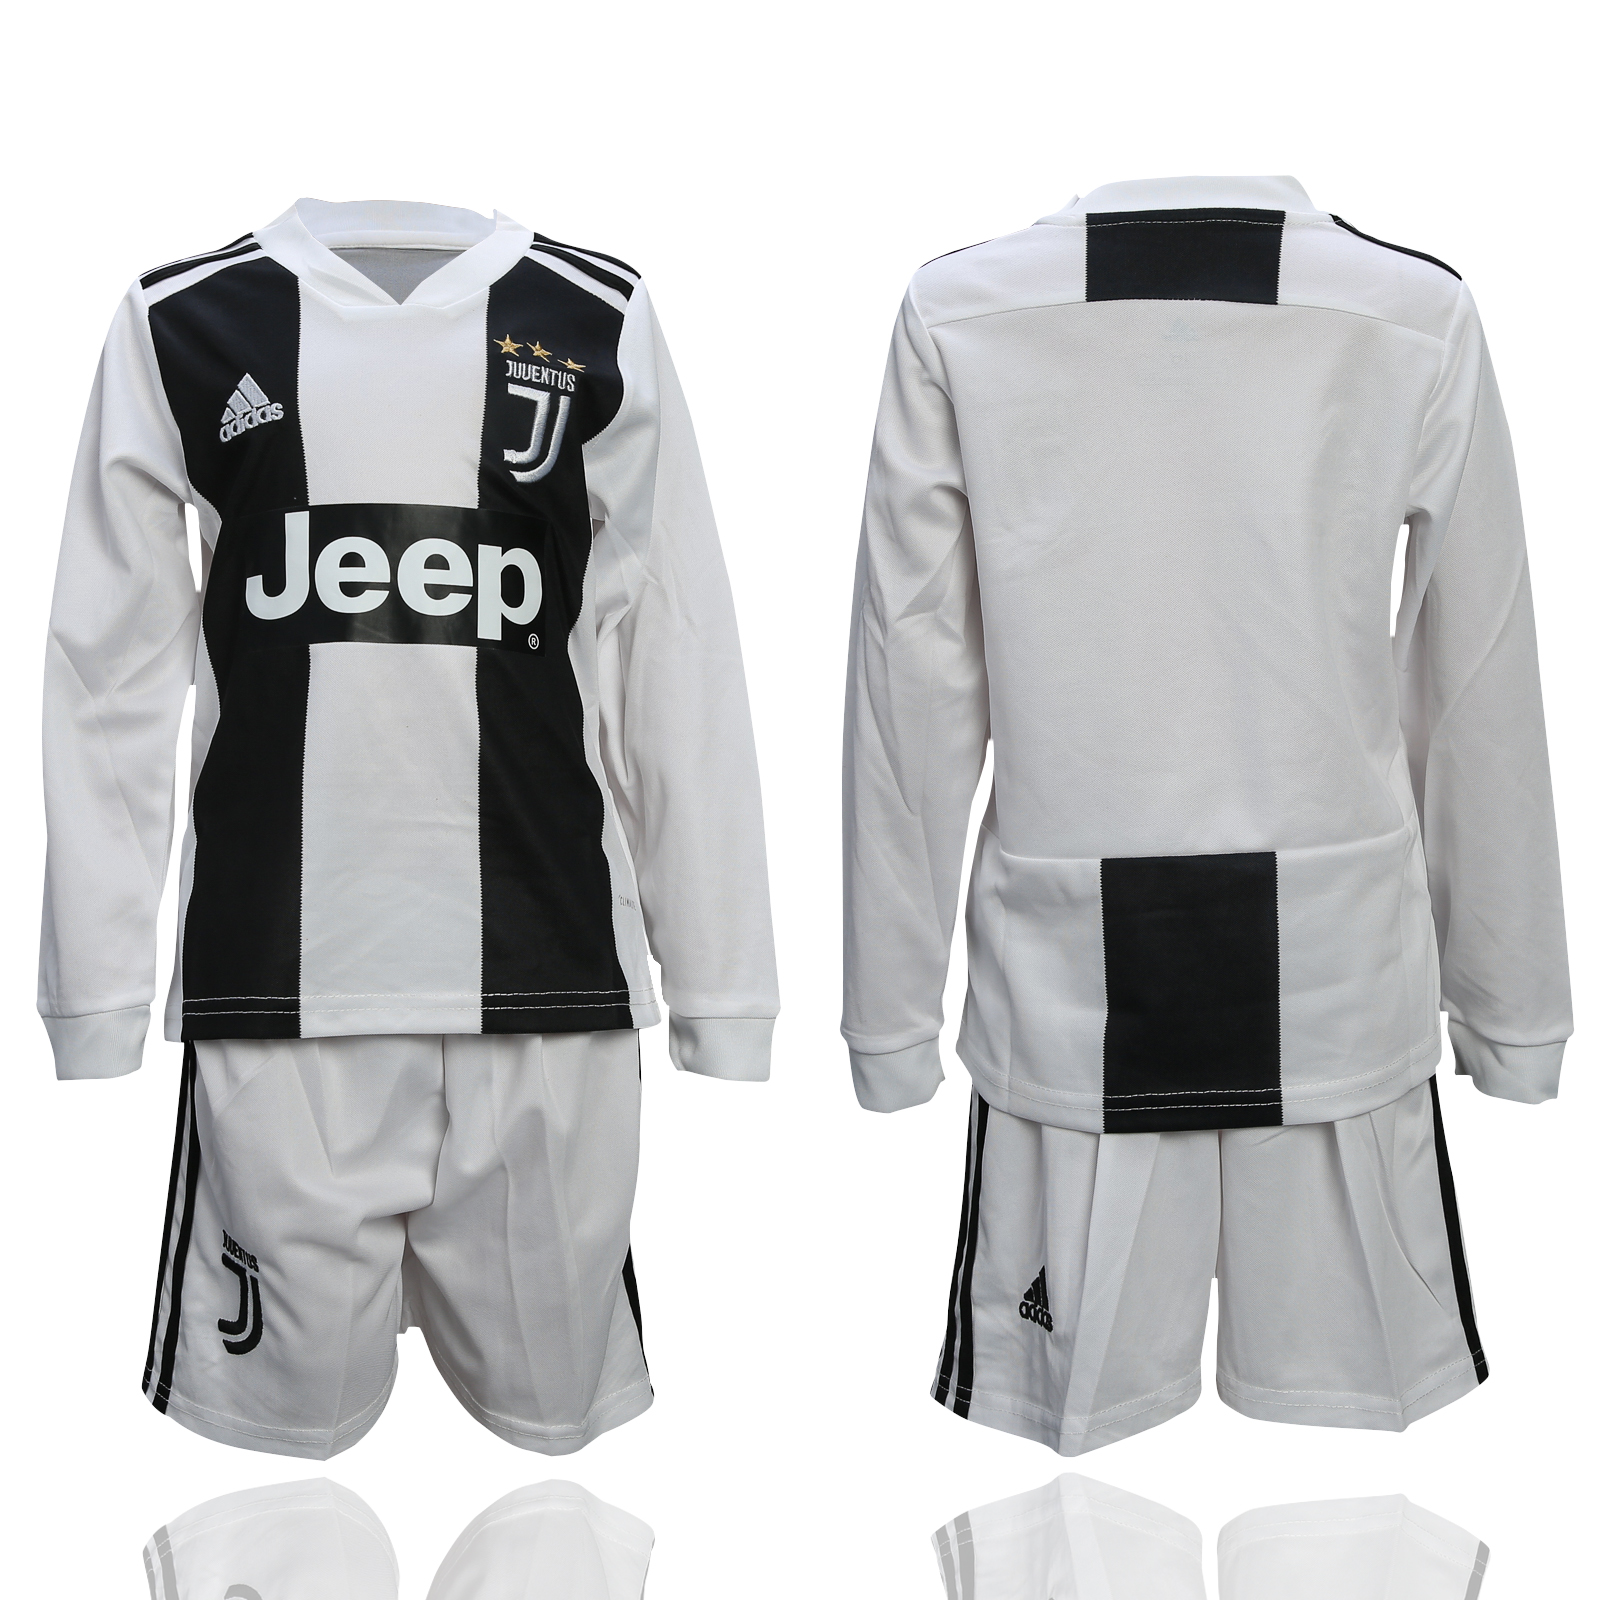 2018-19 Juventus Home Youth Long Sleeve Soccer Jersey